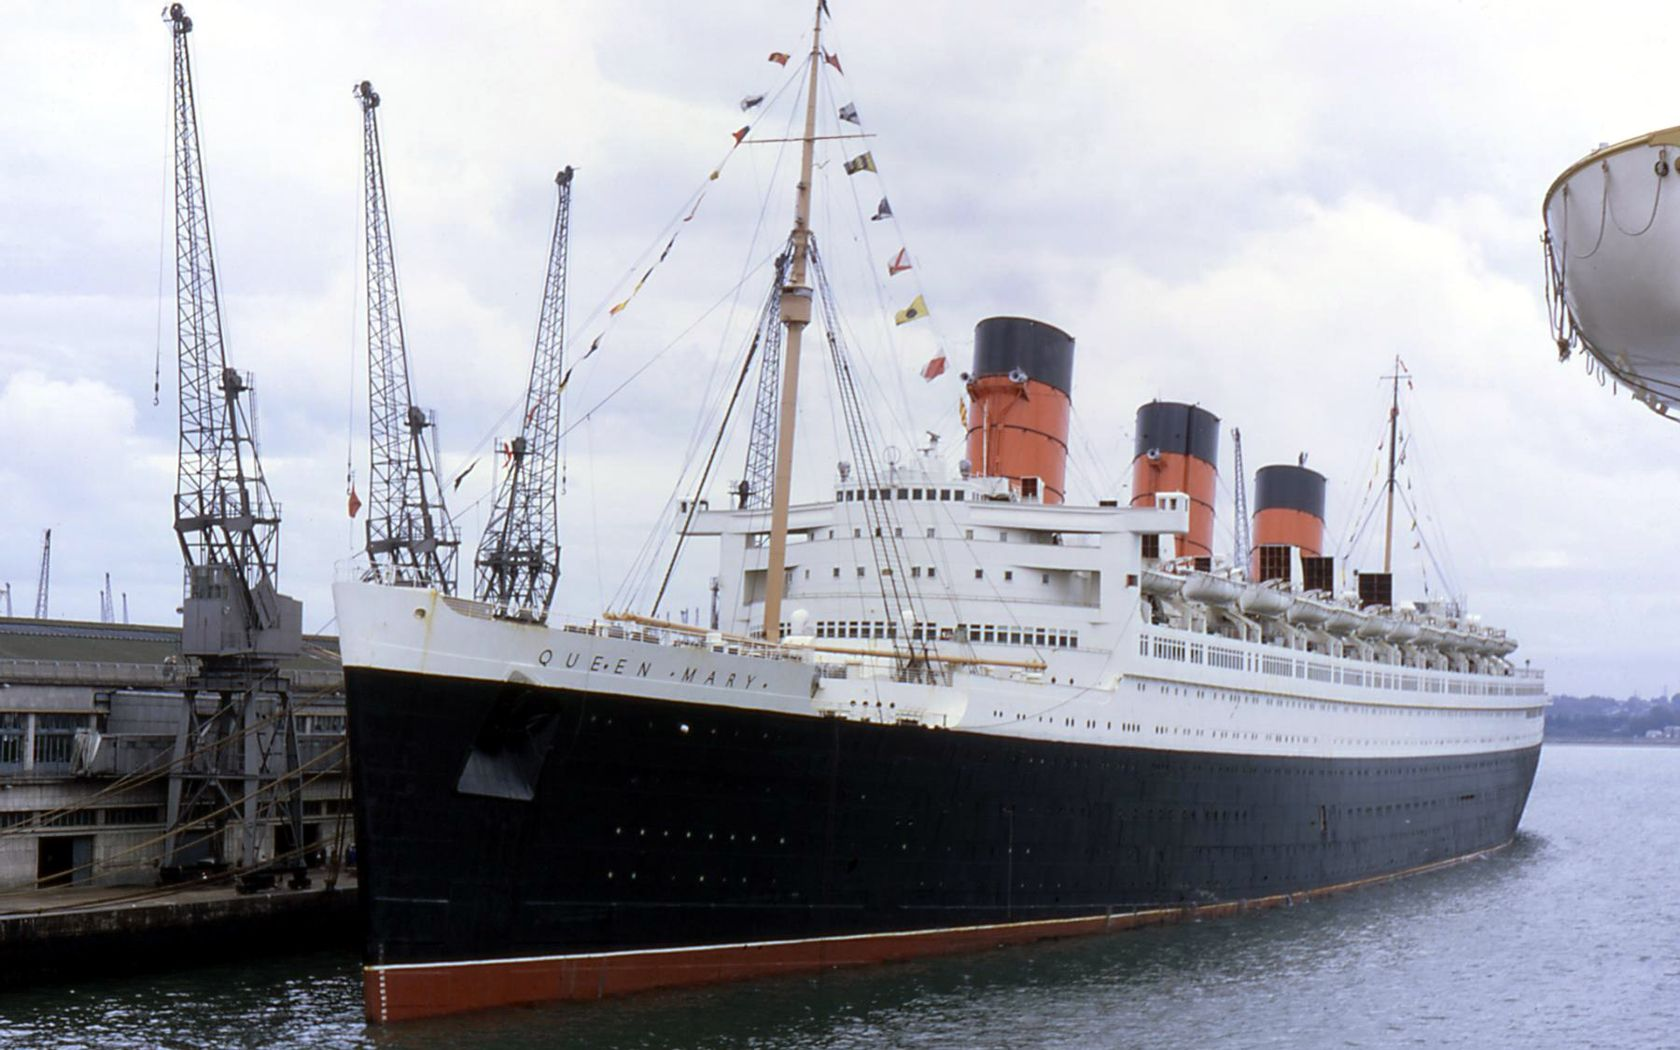 The beautiful Rms queen mary pictures